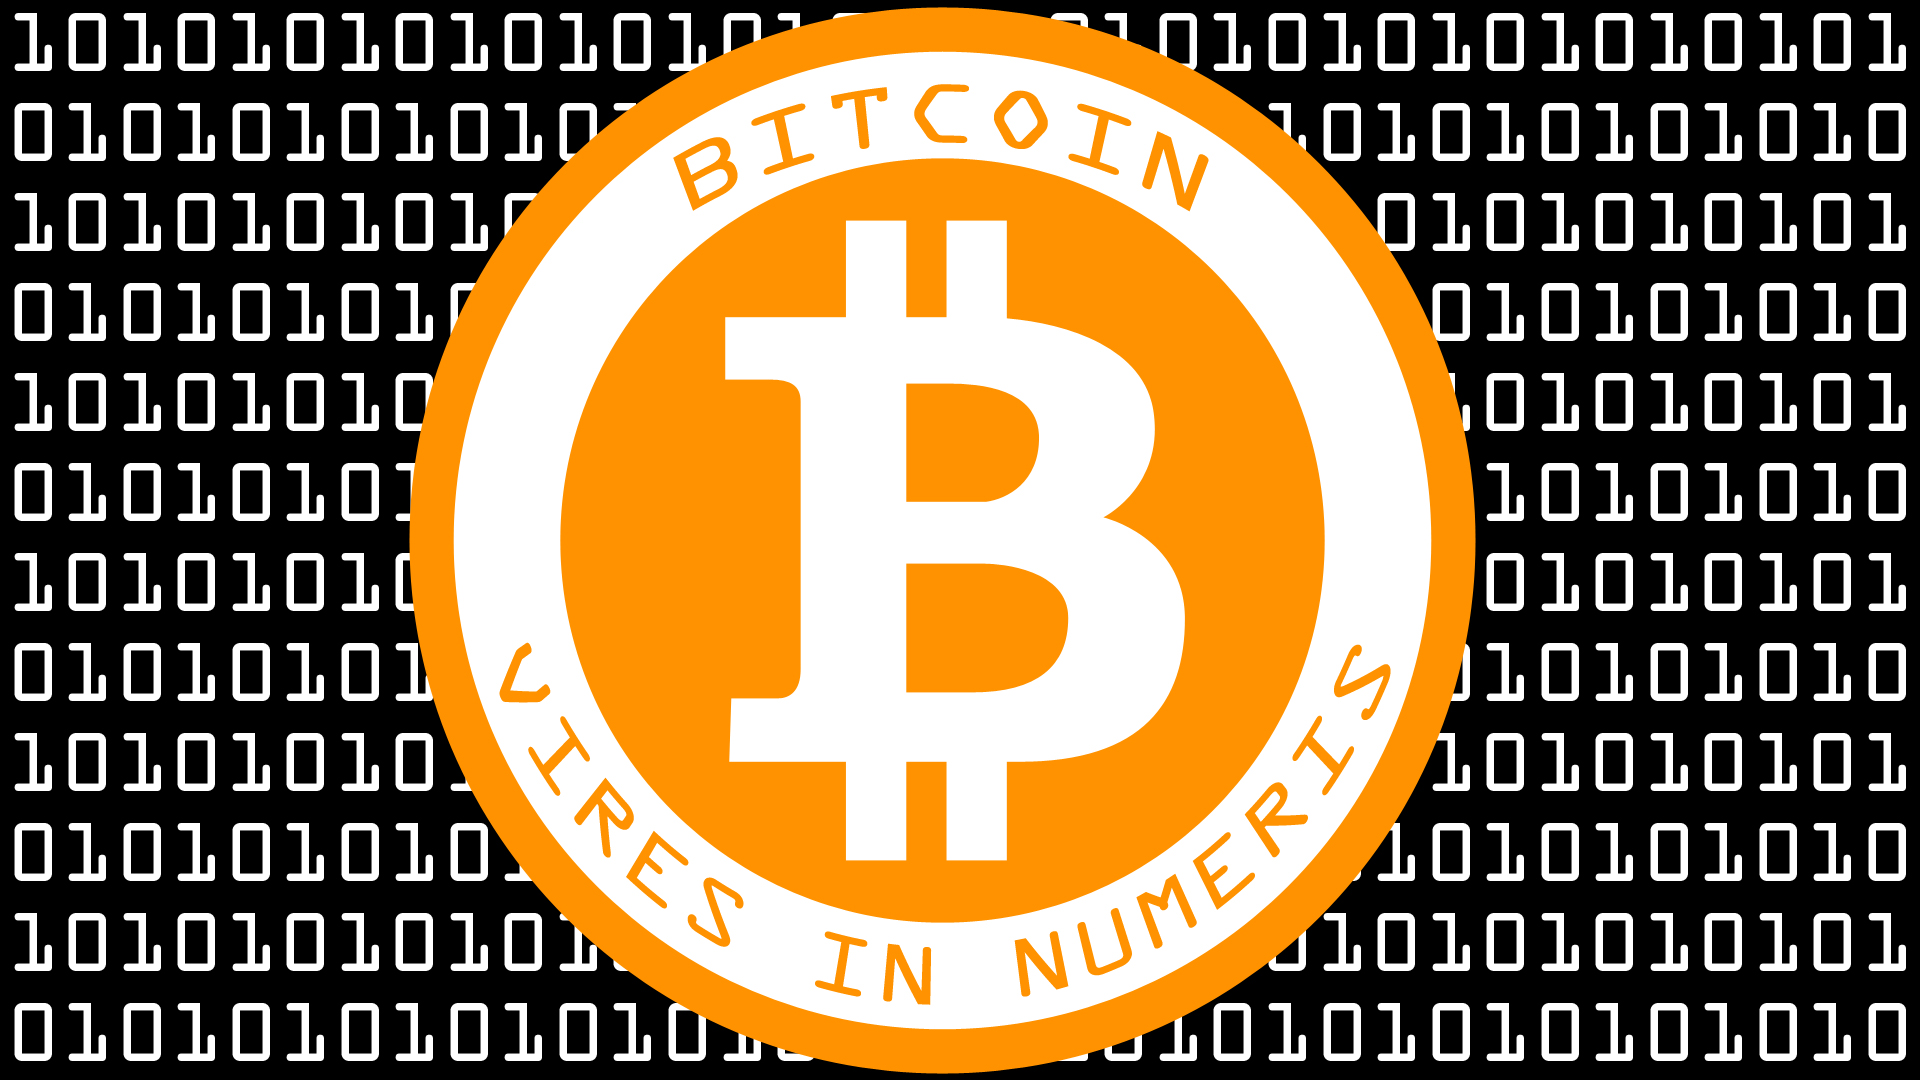 30 pounds to bitcoins for dummies where can i bet on horses in san francisco